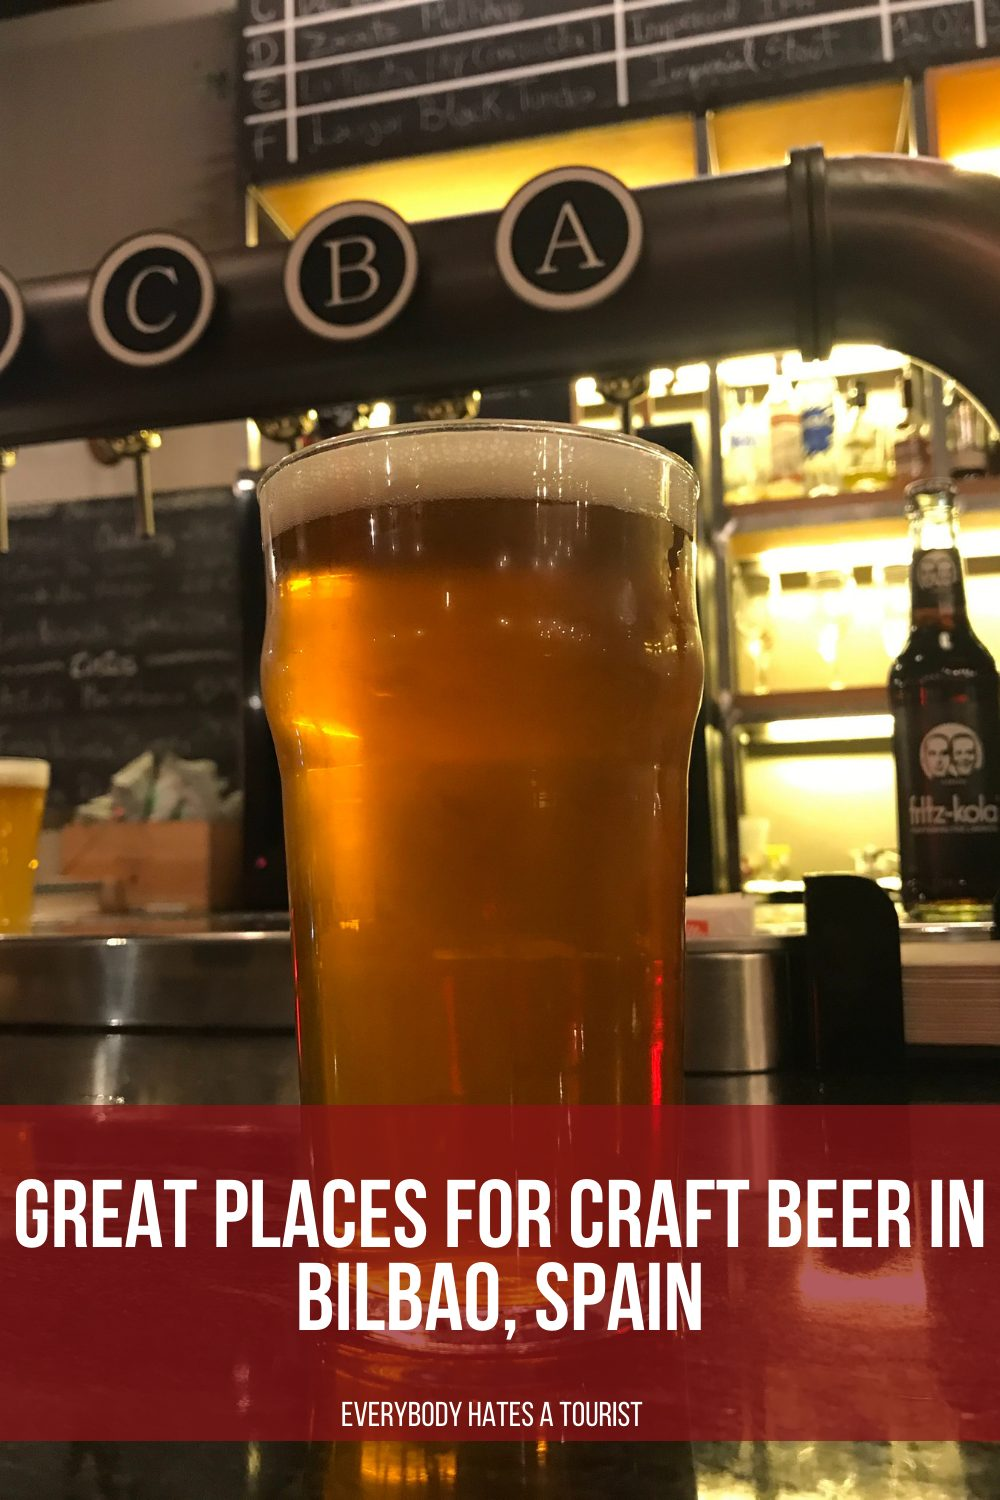 Great places for craft beer in Bilbao Spain - 4 great places for craft beer in Bilbao, Spain